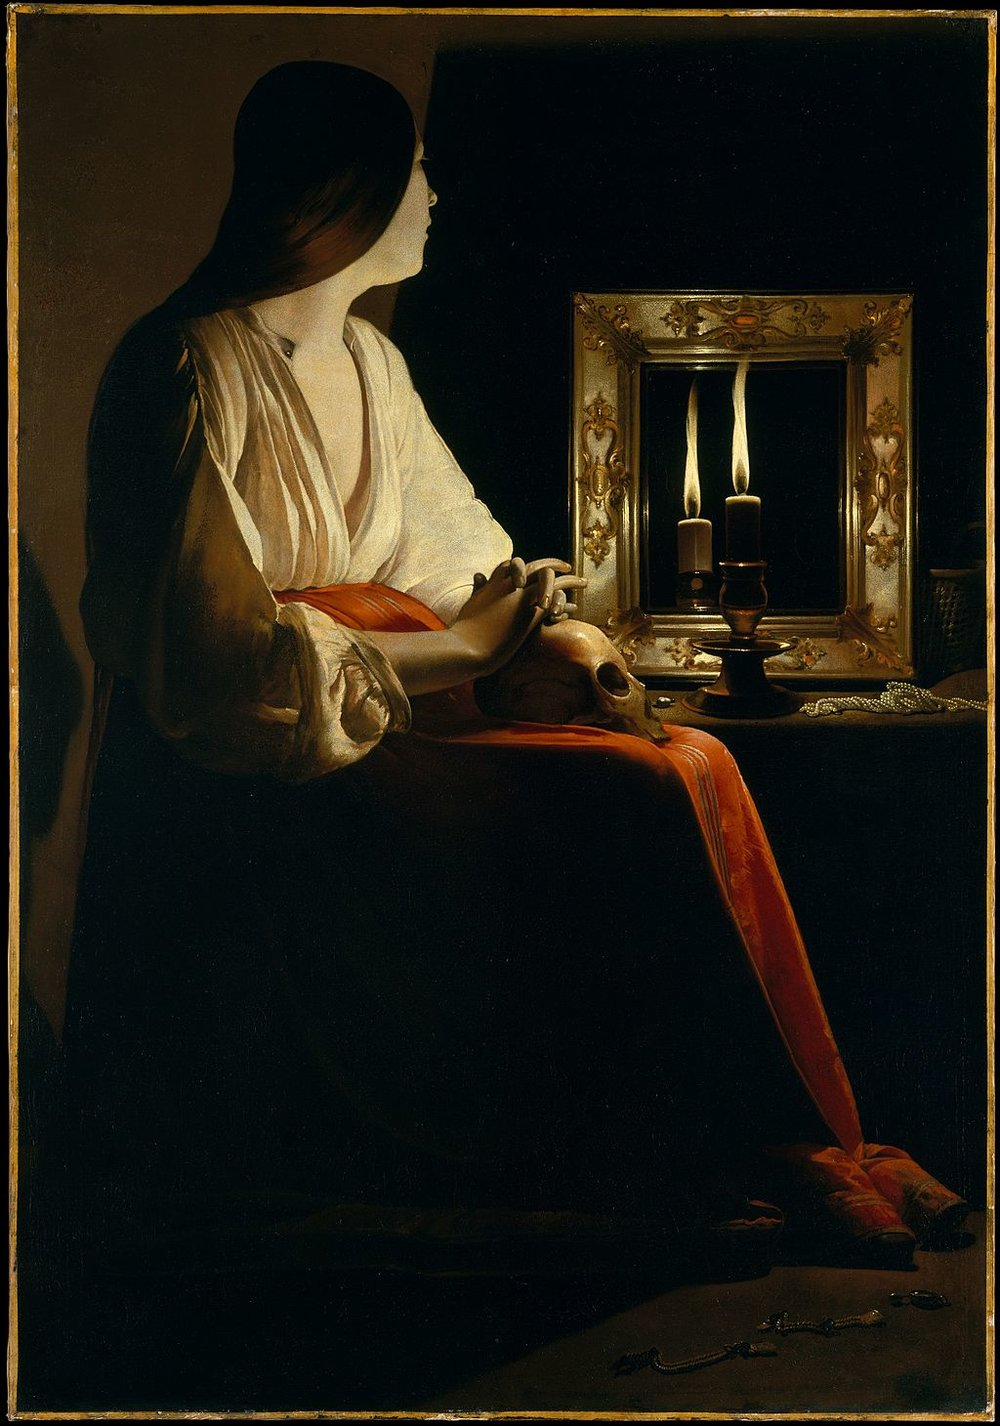 The Penitent Magdalene    (c. 1640) by Georges de la Tour. The Metropolitan Museum of Art (New York, NY).